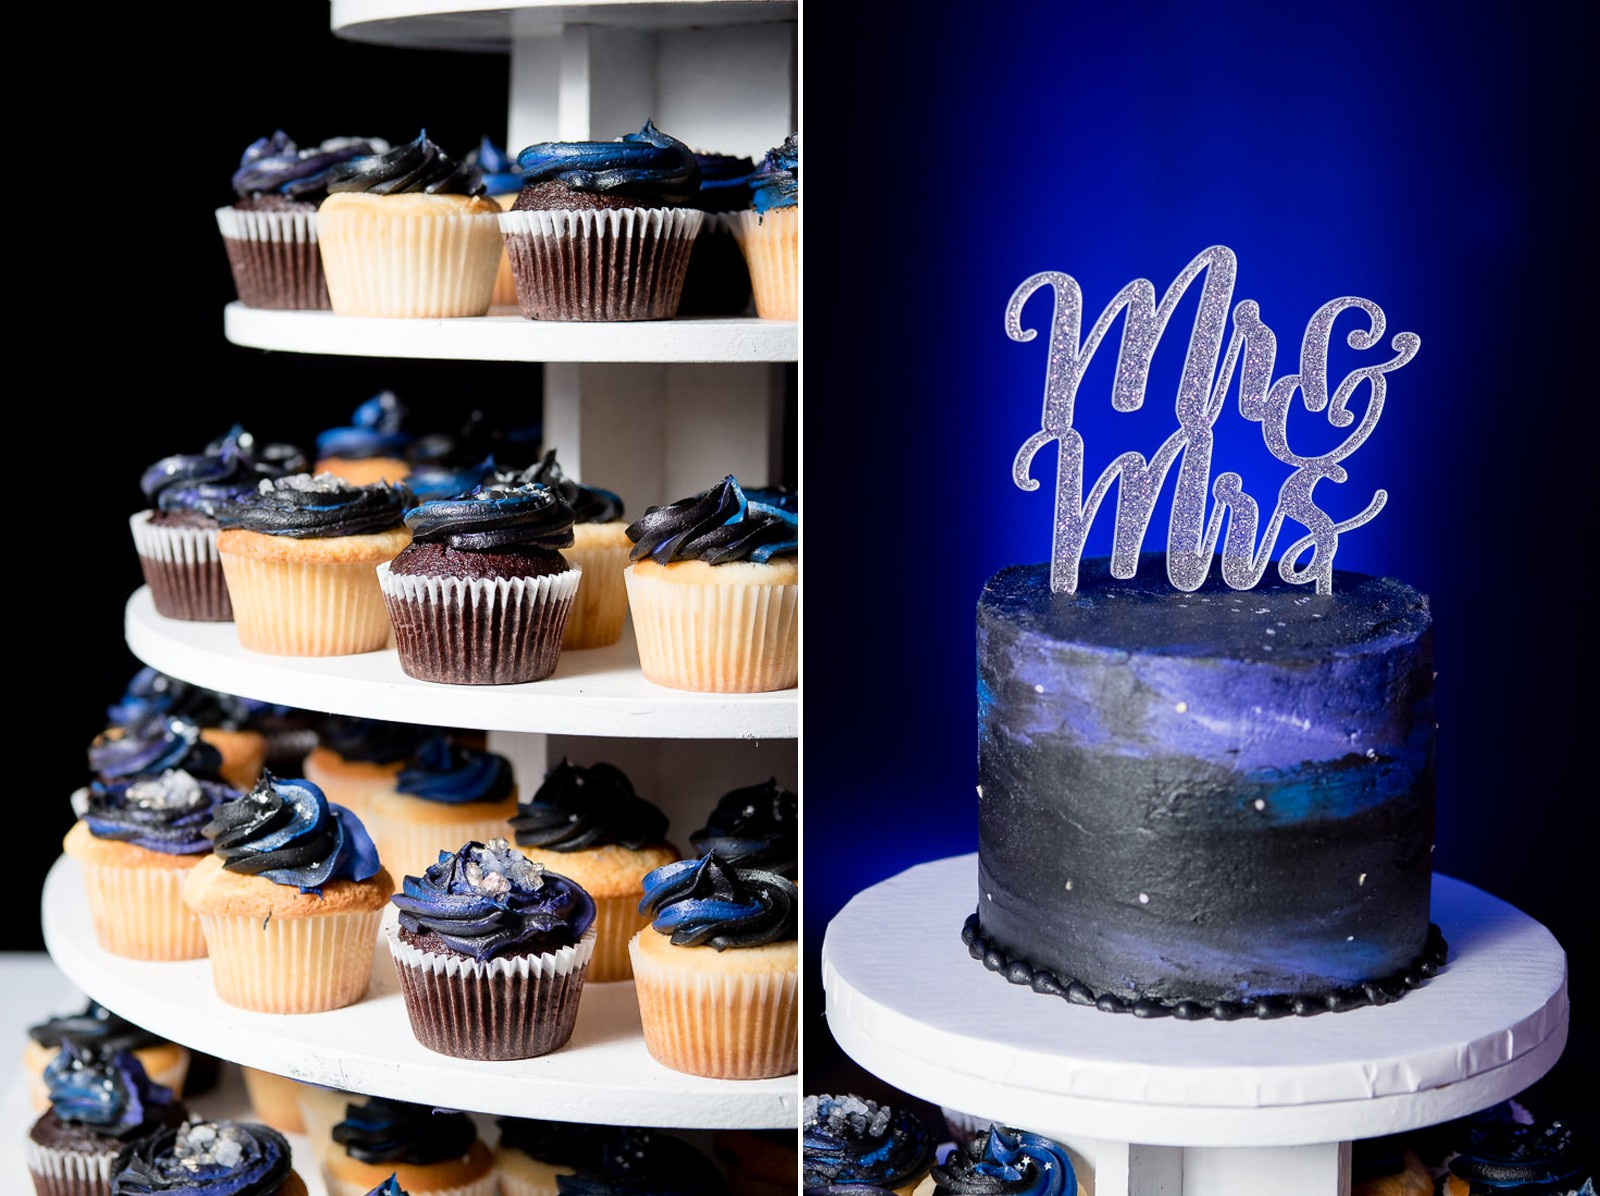 Rochester, NY Wedding - Rochester Museum & Science Center Reception - Get Caked cupcakes -11.jpg